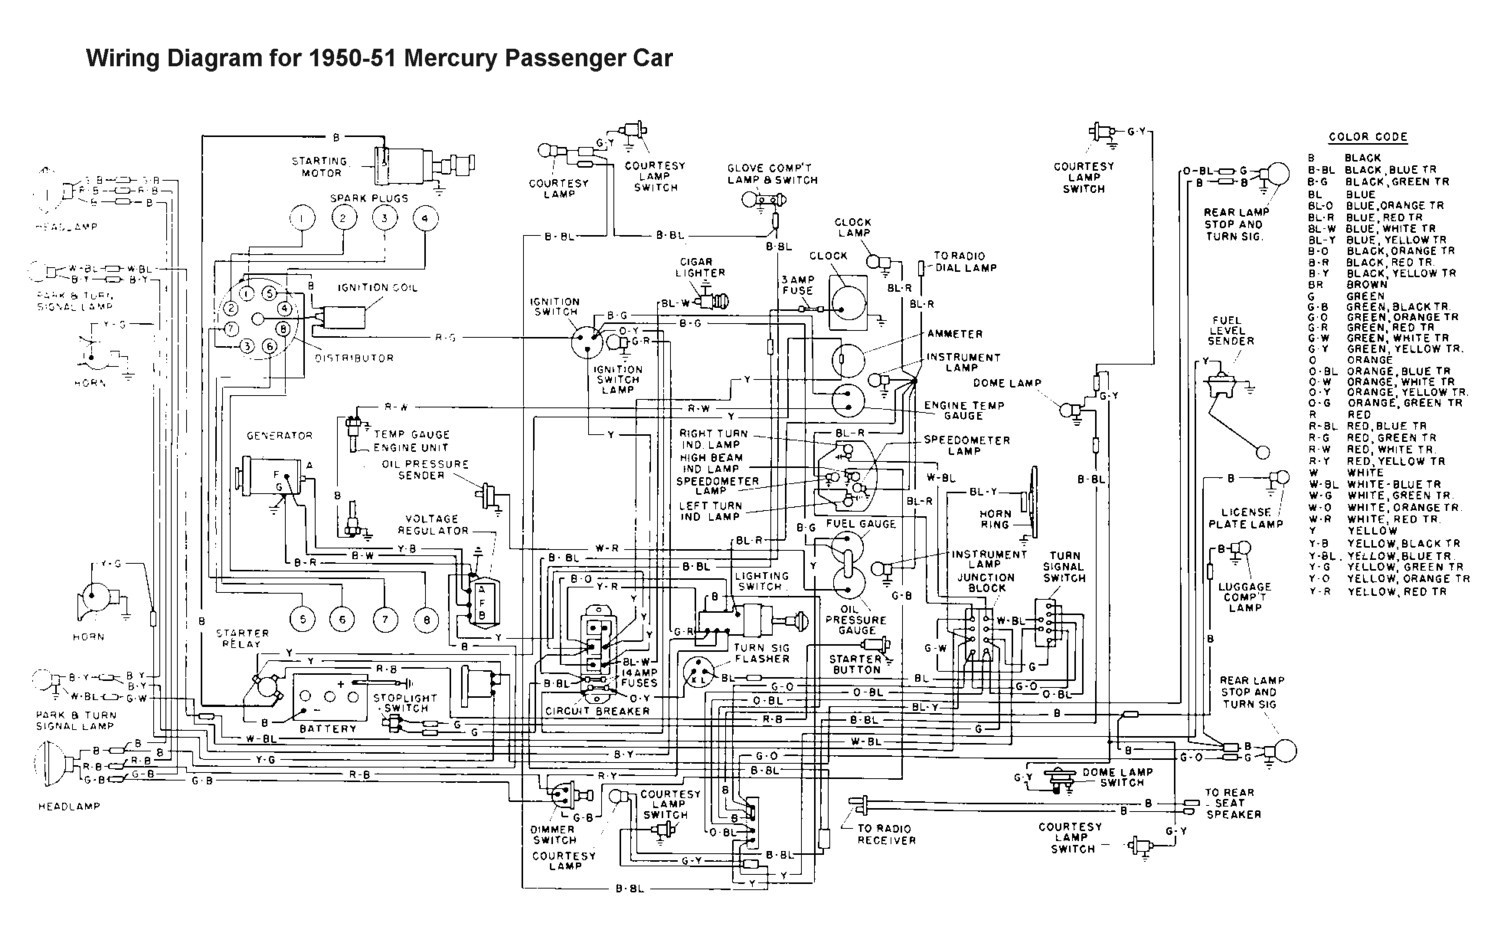 Flathead Electrical Wiring Diagrams P 51 Engine Diagram For 1950 Mercury Car